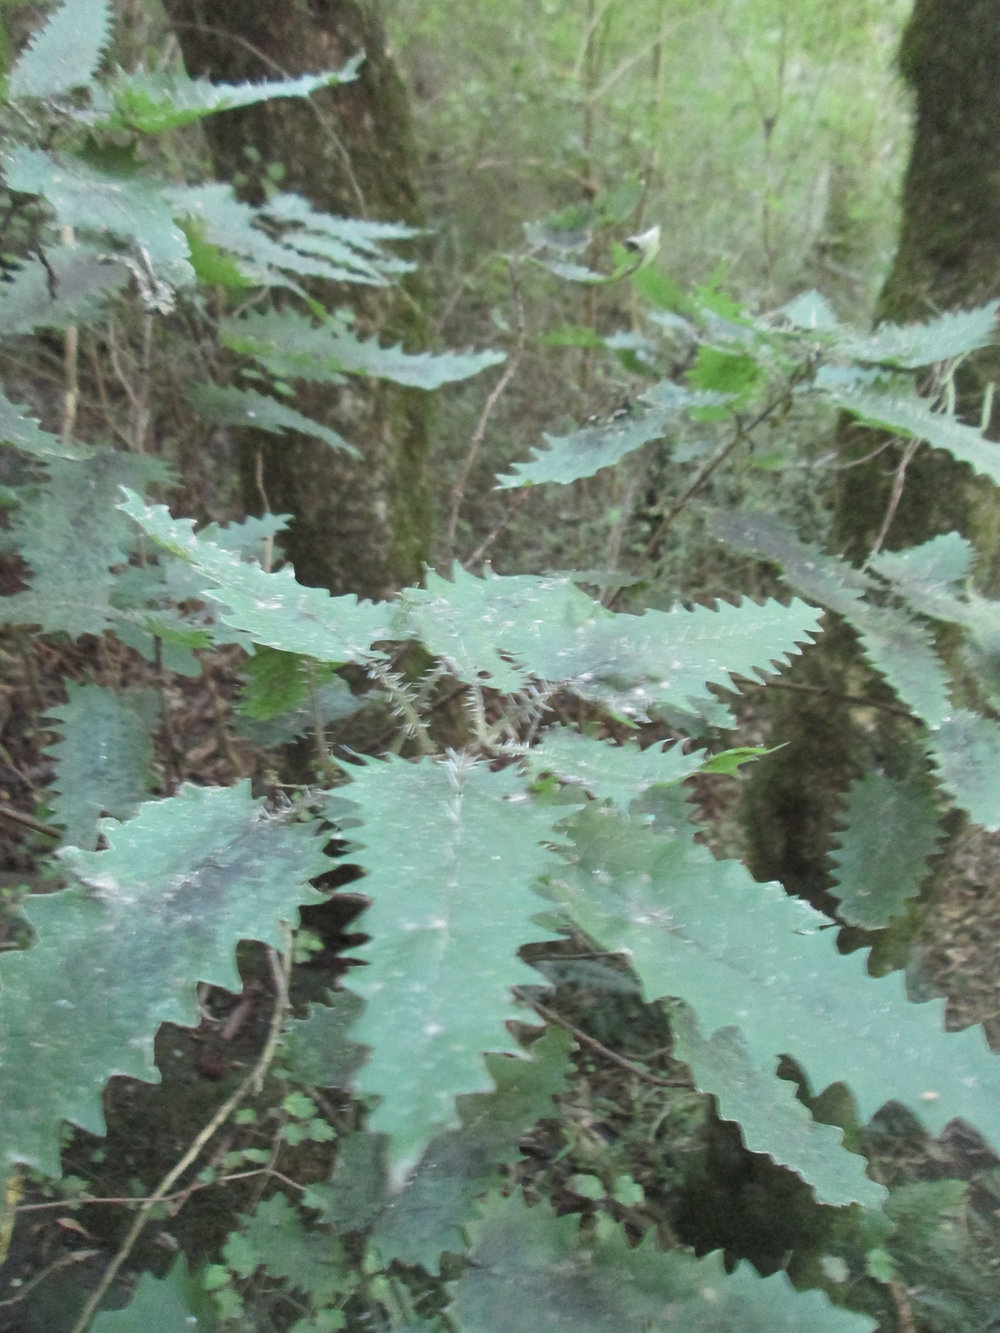 I used to think nothing in NZ would kill you except the weather and (very rarely) earthquakes, but I found out that this will too. New Zealand tree nettles have poisonous spines that can cause paralysis if you get stung enough times. A hunter who bush-bashed through a big patch of them died. But hey, at least they don't chase after you like snakes, or crawl into your boots like poisonous spiders (I'm looking at you, Australia).